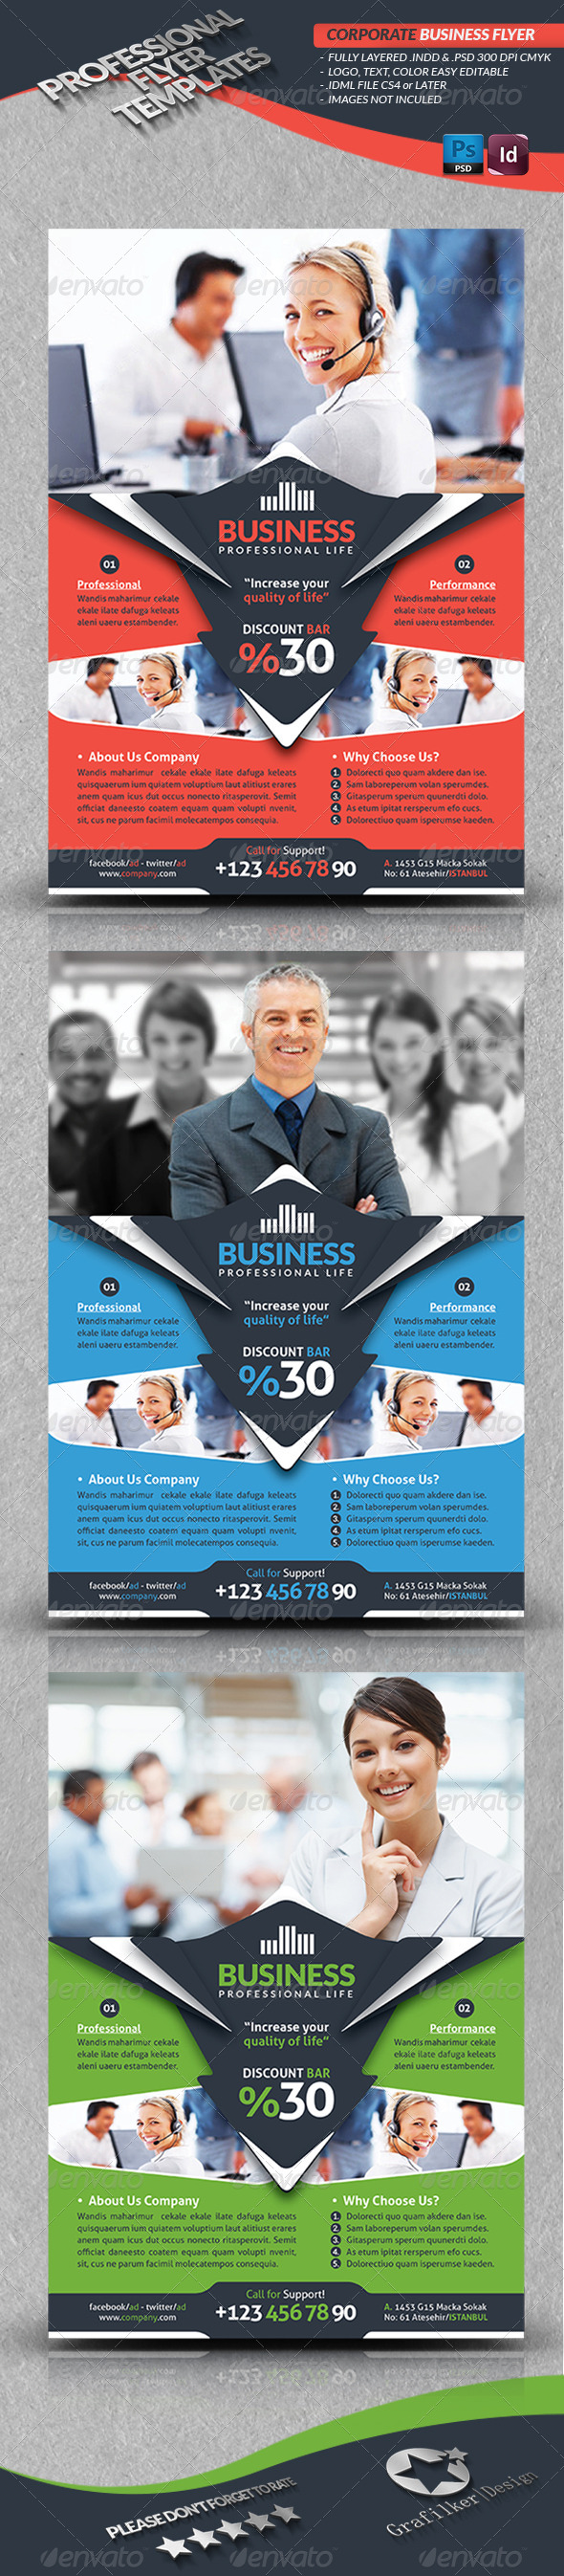 GraphicRiver Corporate Business Flyer 4137133